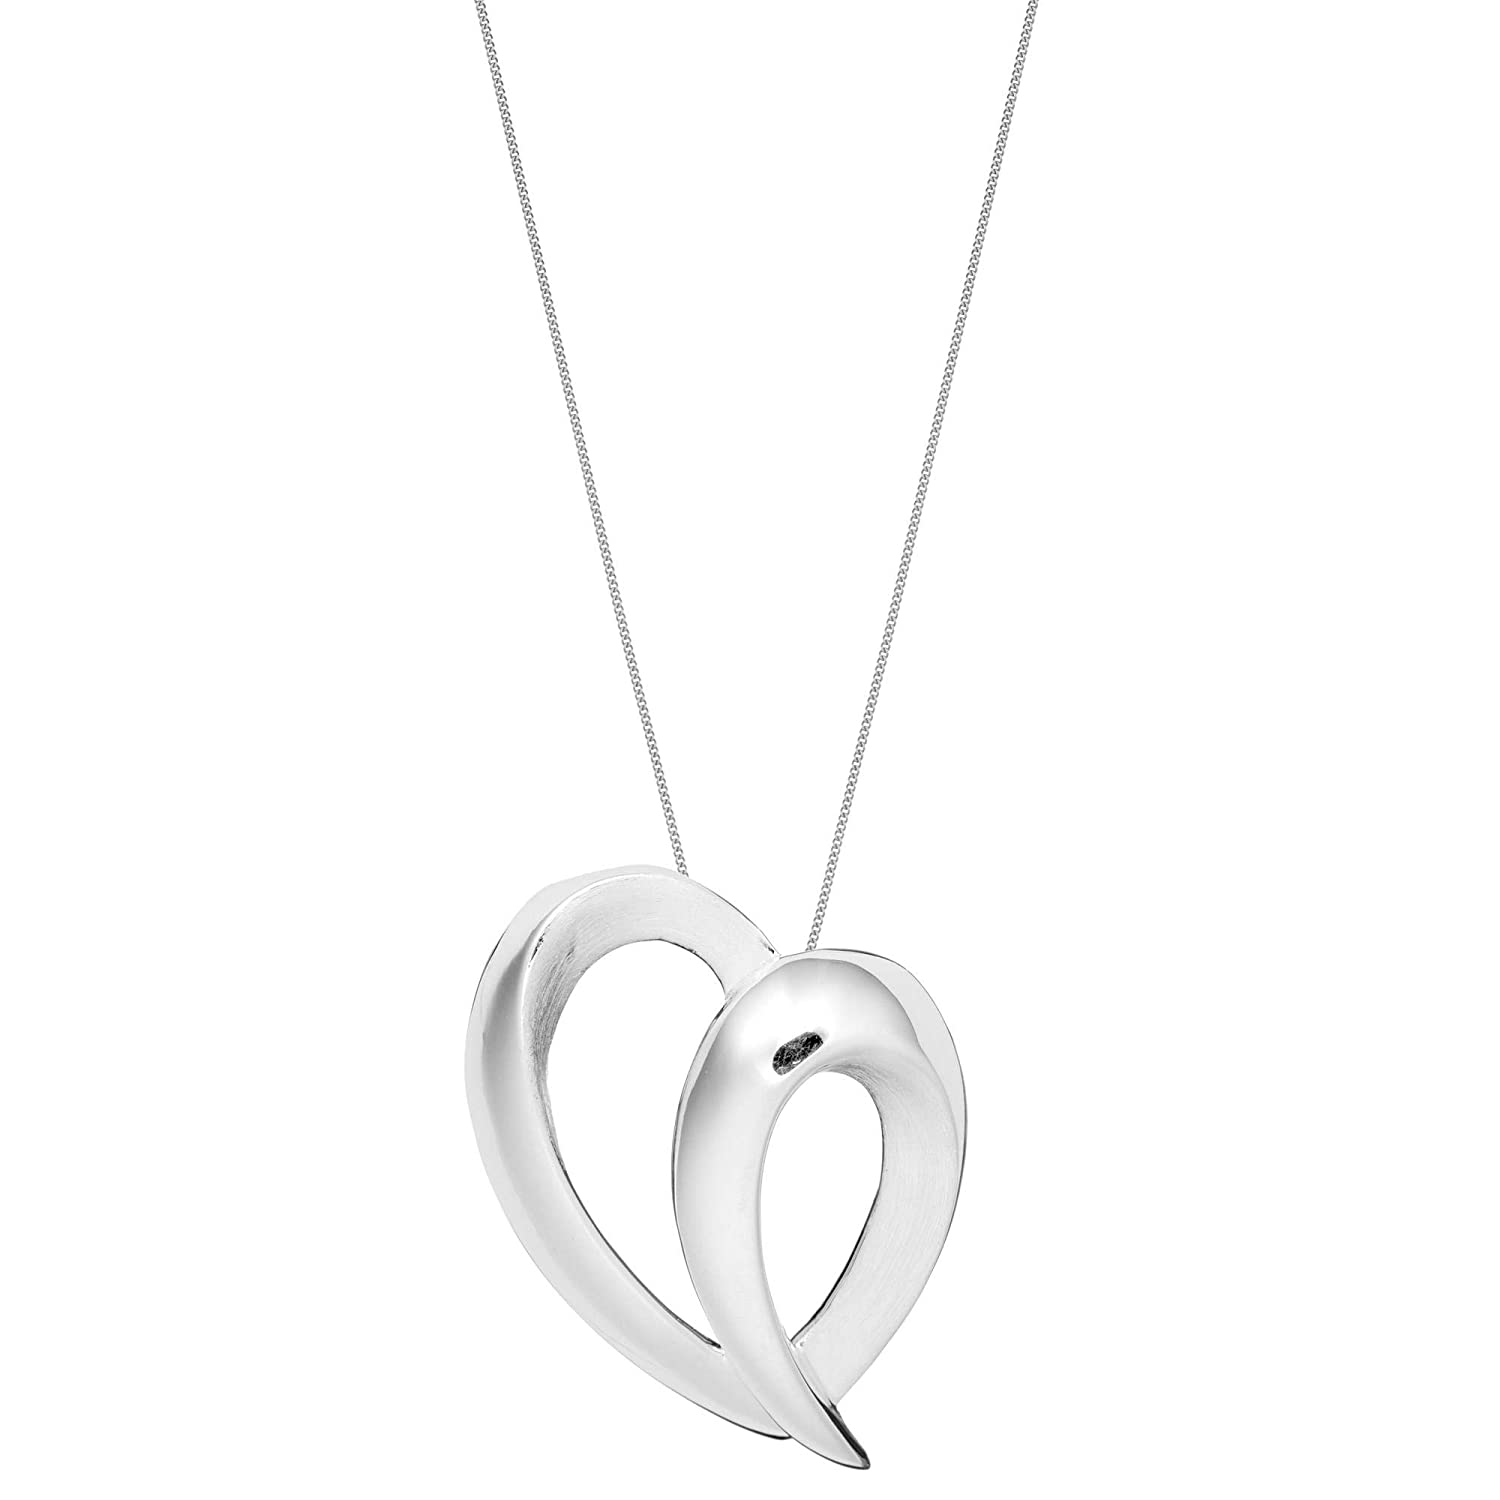 Silverly Womens .925 Sterling Silver Hidden Bail Brushed Curved Heart Pendant Necklace 18